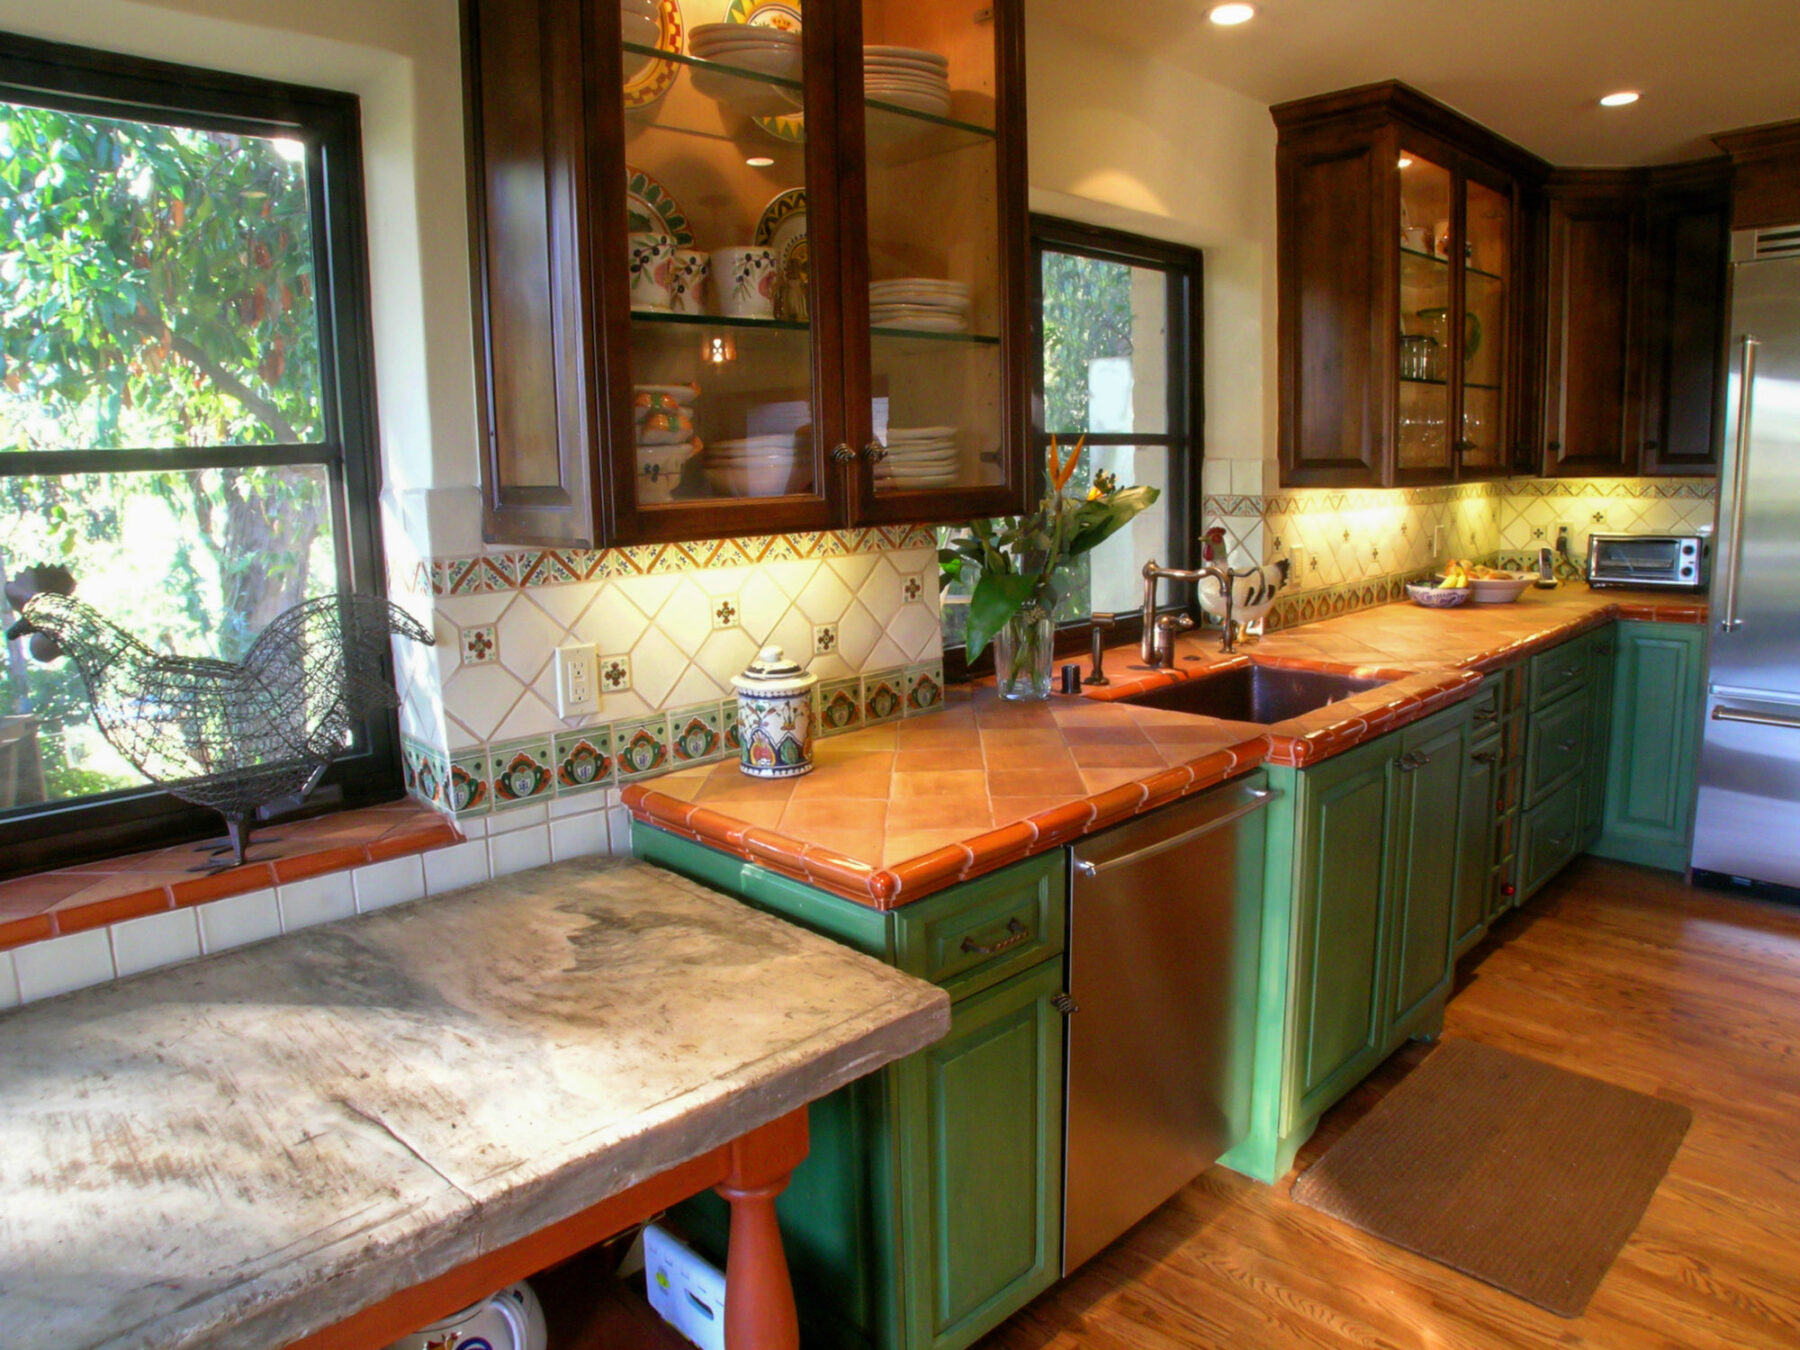 Spanish style Kitchen remodel with period features